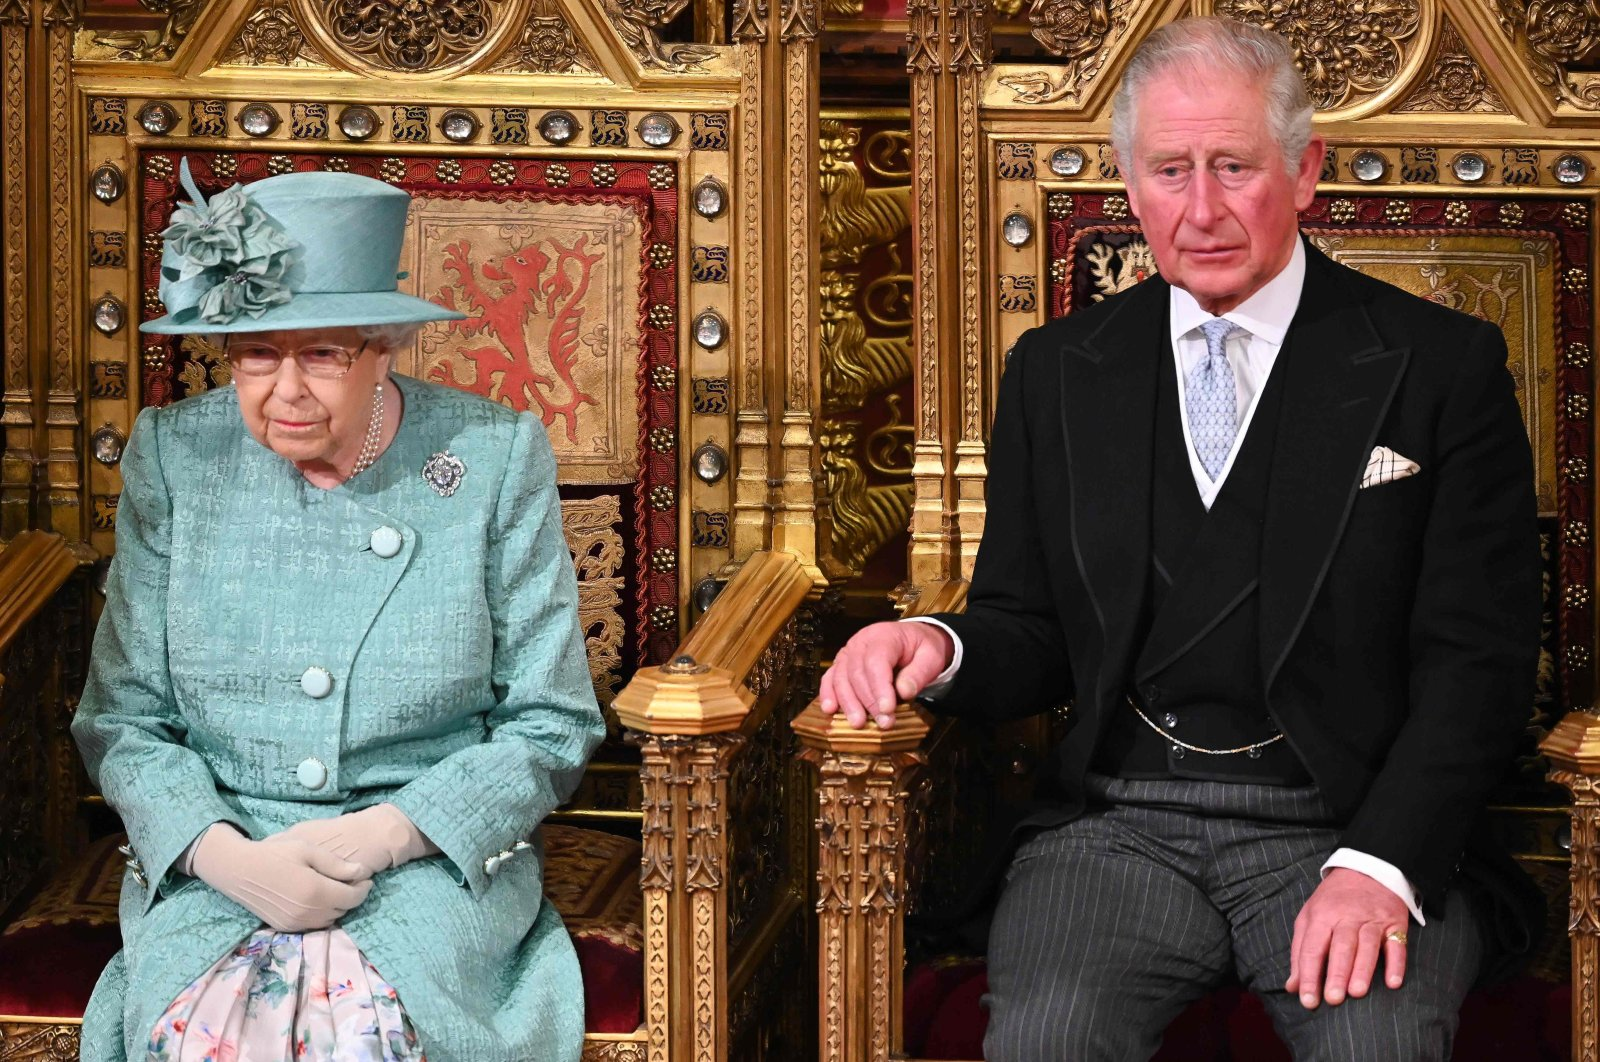 Britain's Prince Charles sits with Queen Elizabeth II on the Sovereign's Throne before she delivered the Queen's Speech in the House of Lords chamber, during the state opening of Parliament in the Houses of Parliament, London, Dec. 19, 2019. (AFP Photo)